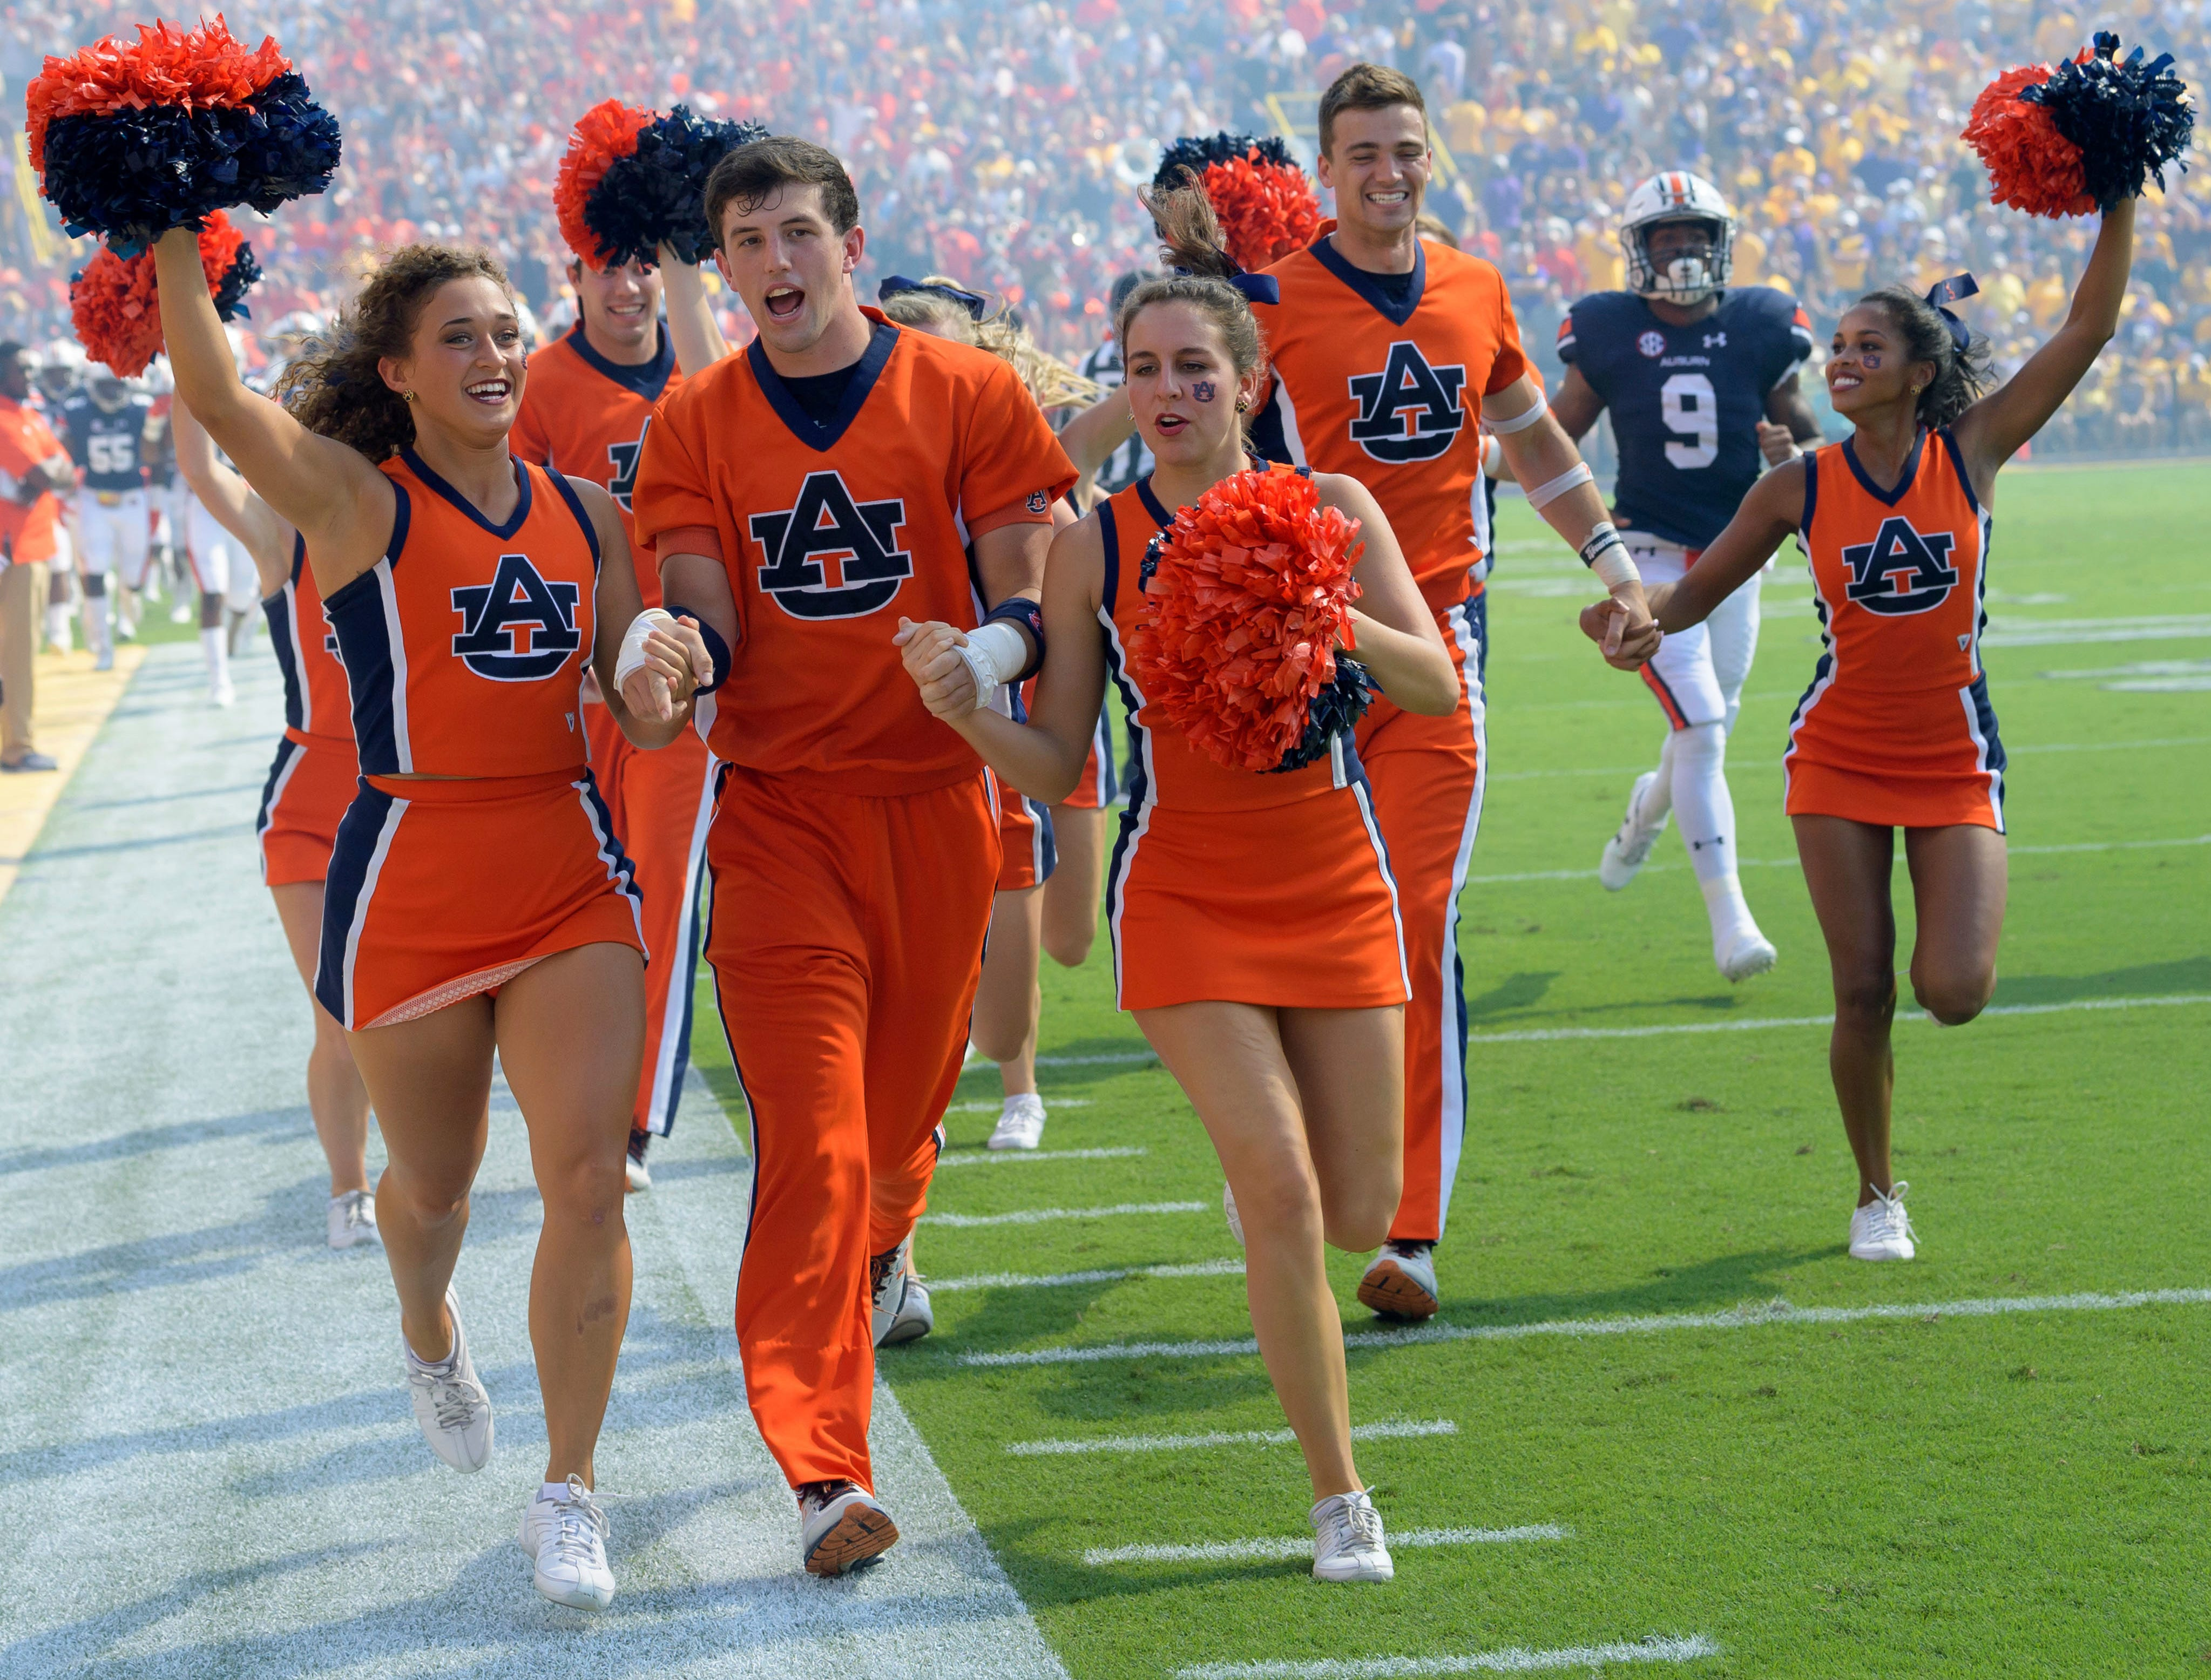 Auburn cheerleaders run onto the field before an NCAA college football game against LSU in Baton Rouge, La., Saturday, Oct. 14, 2017. (AP Photo/Matthew Hinton)